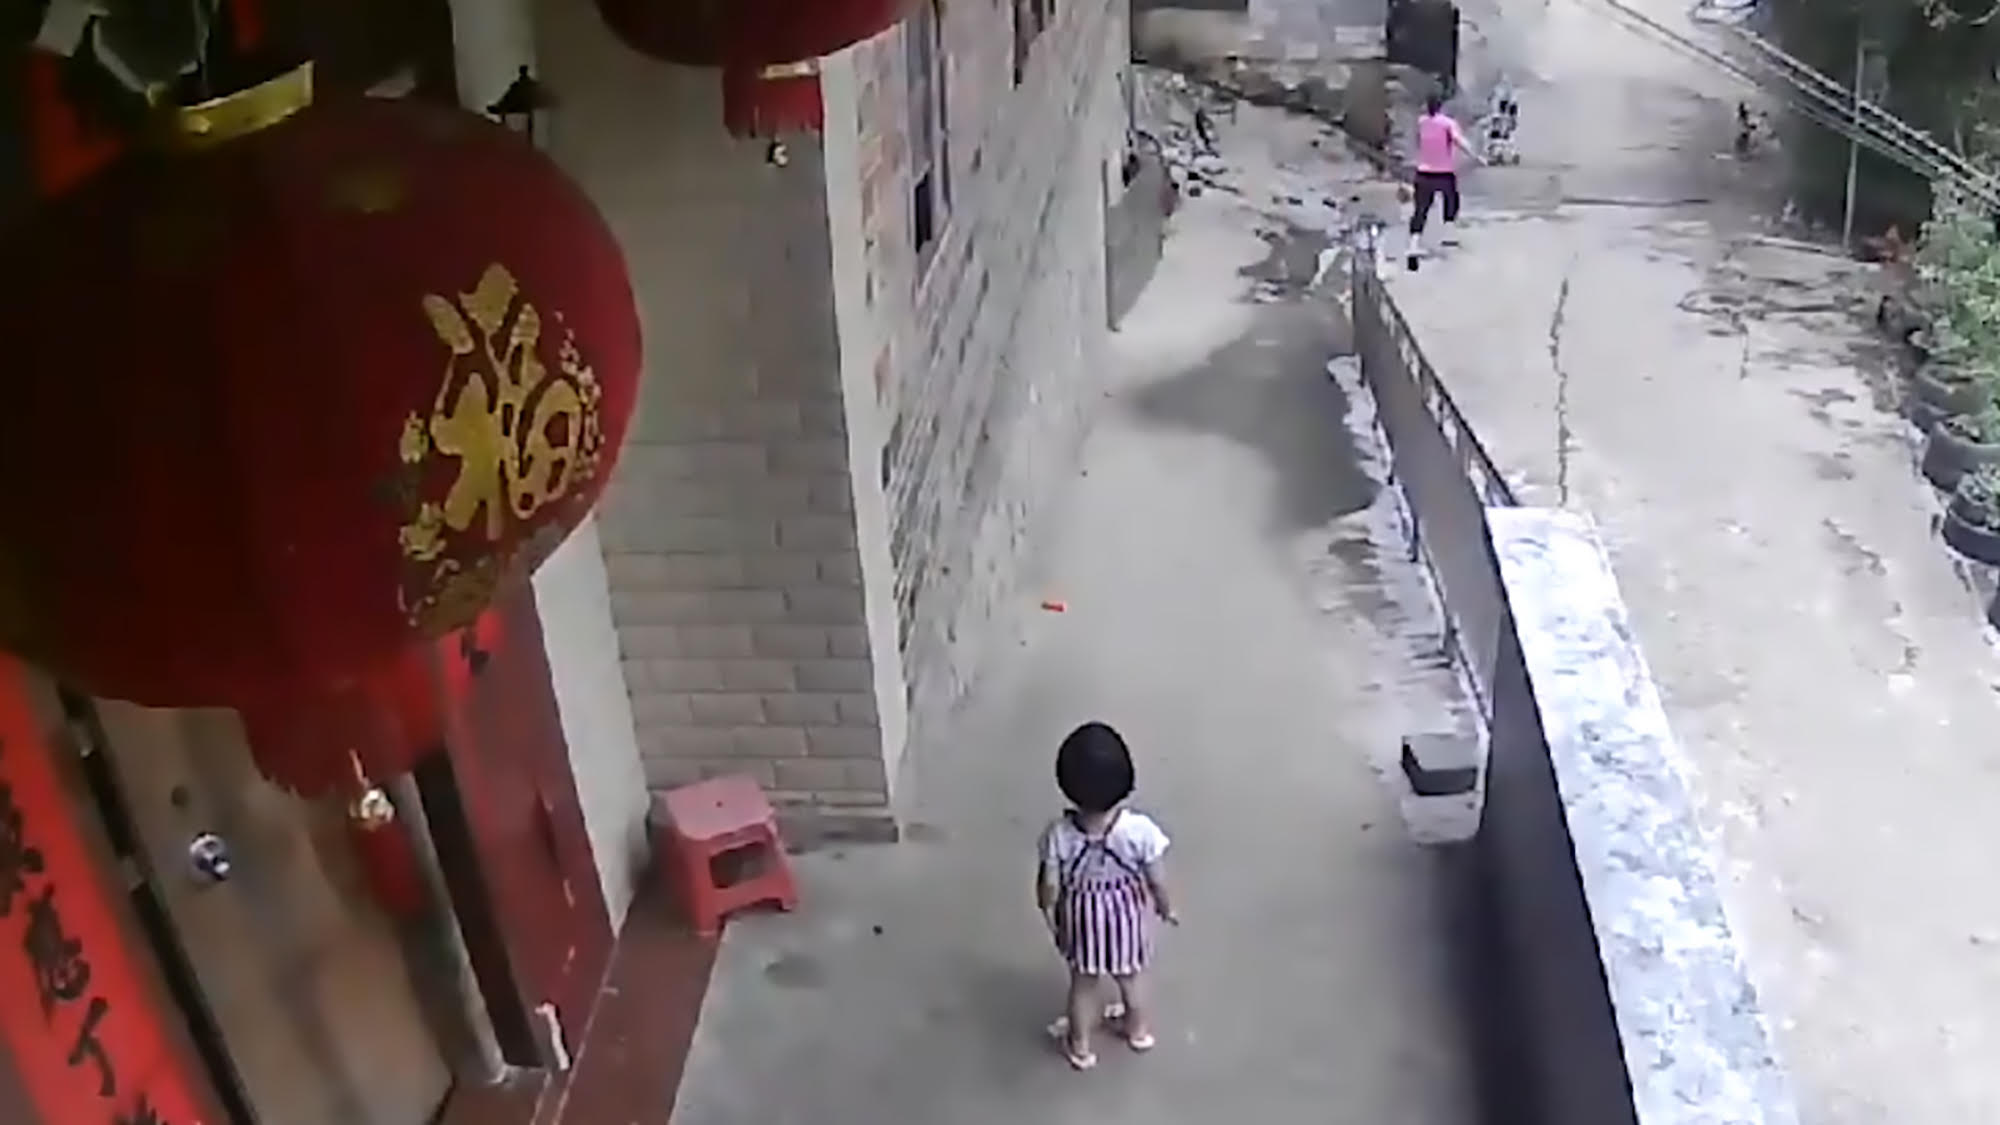 Girl Lets Go Of Stroller And Sends It Hurtling Down Hill strollerASIAWIRE5